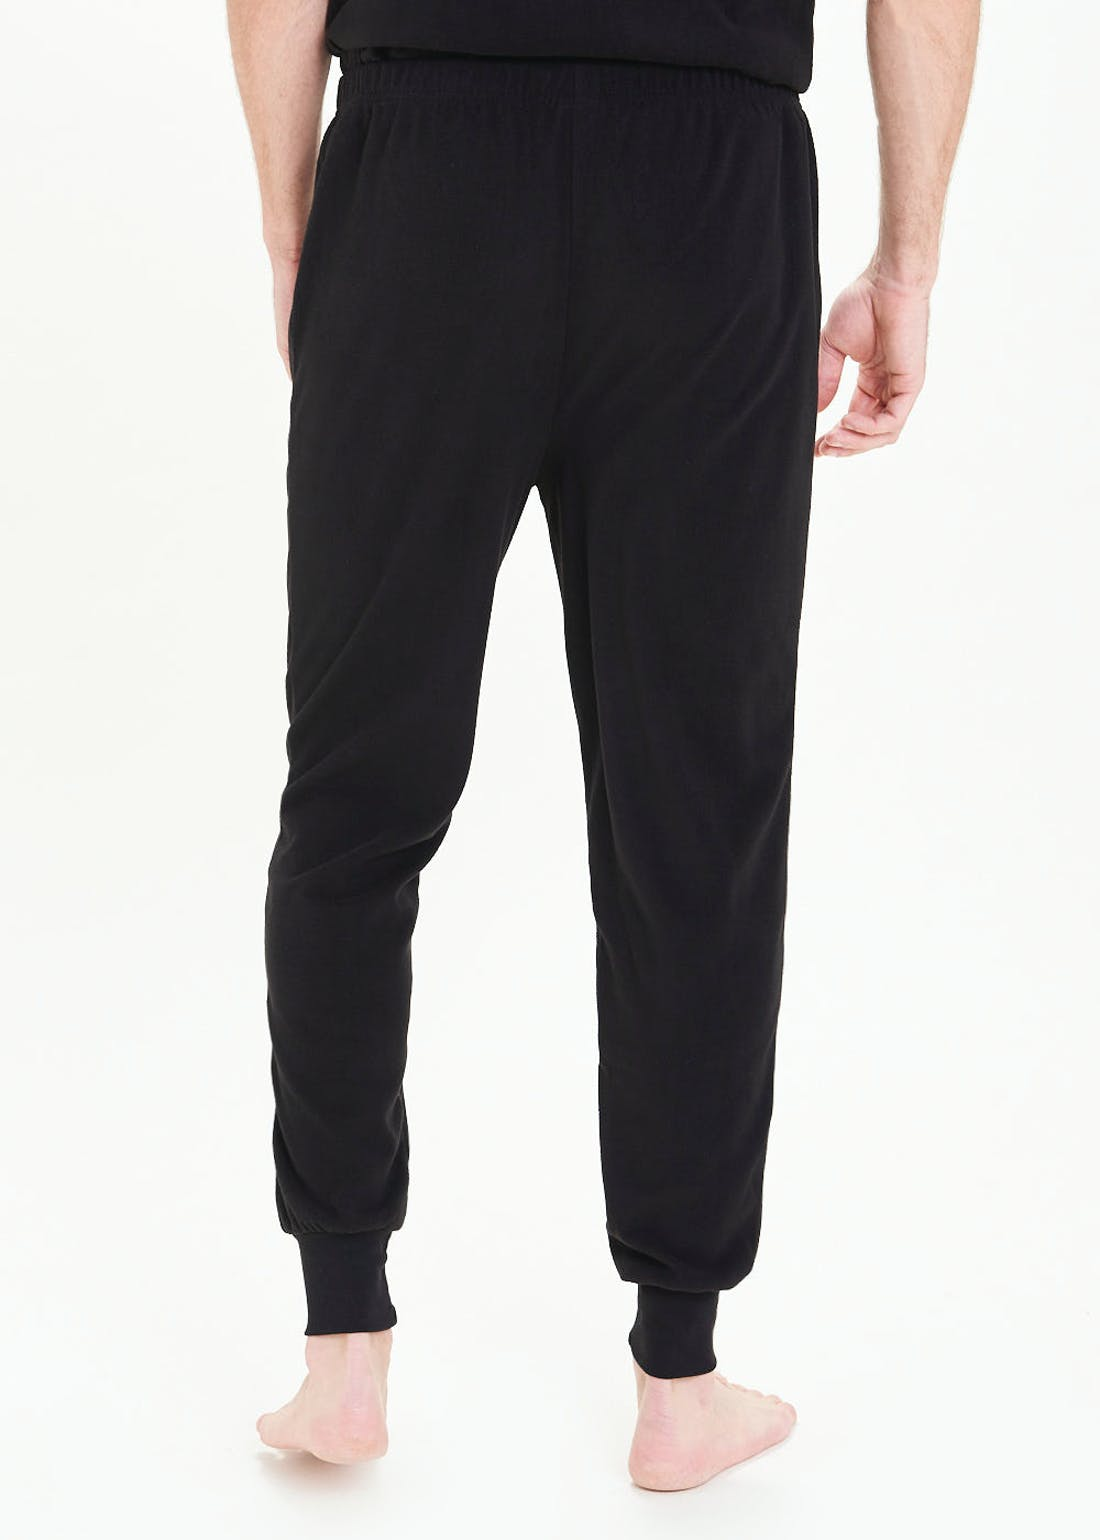 Micro-Fleece Long Johns